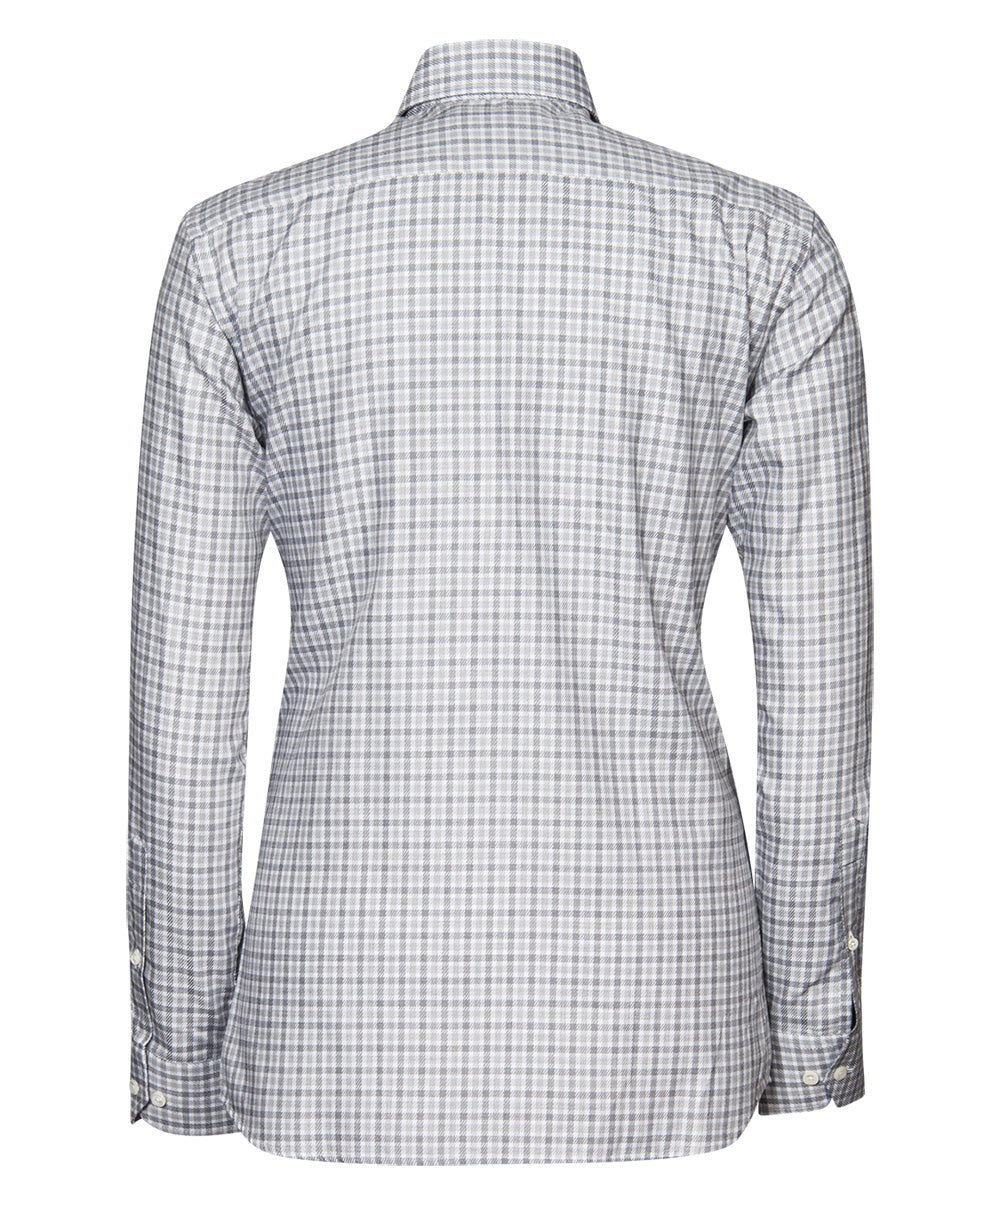 Herman Light Grey/Medium Grey/White Check Pattern Dress Shirt